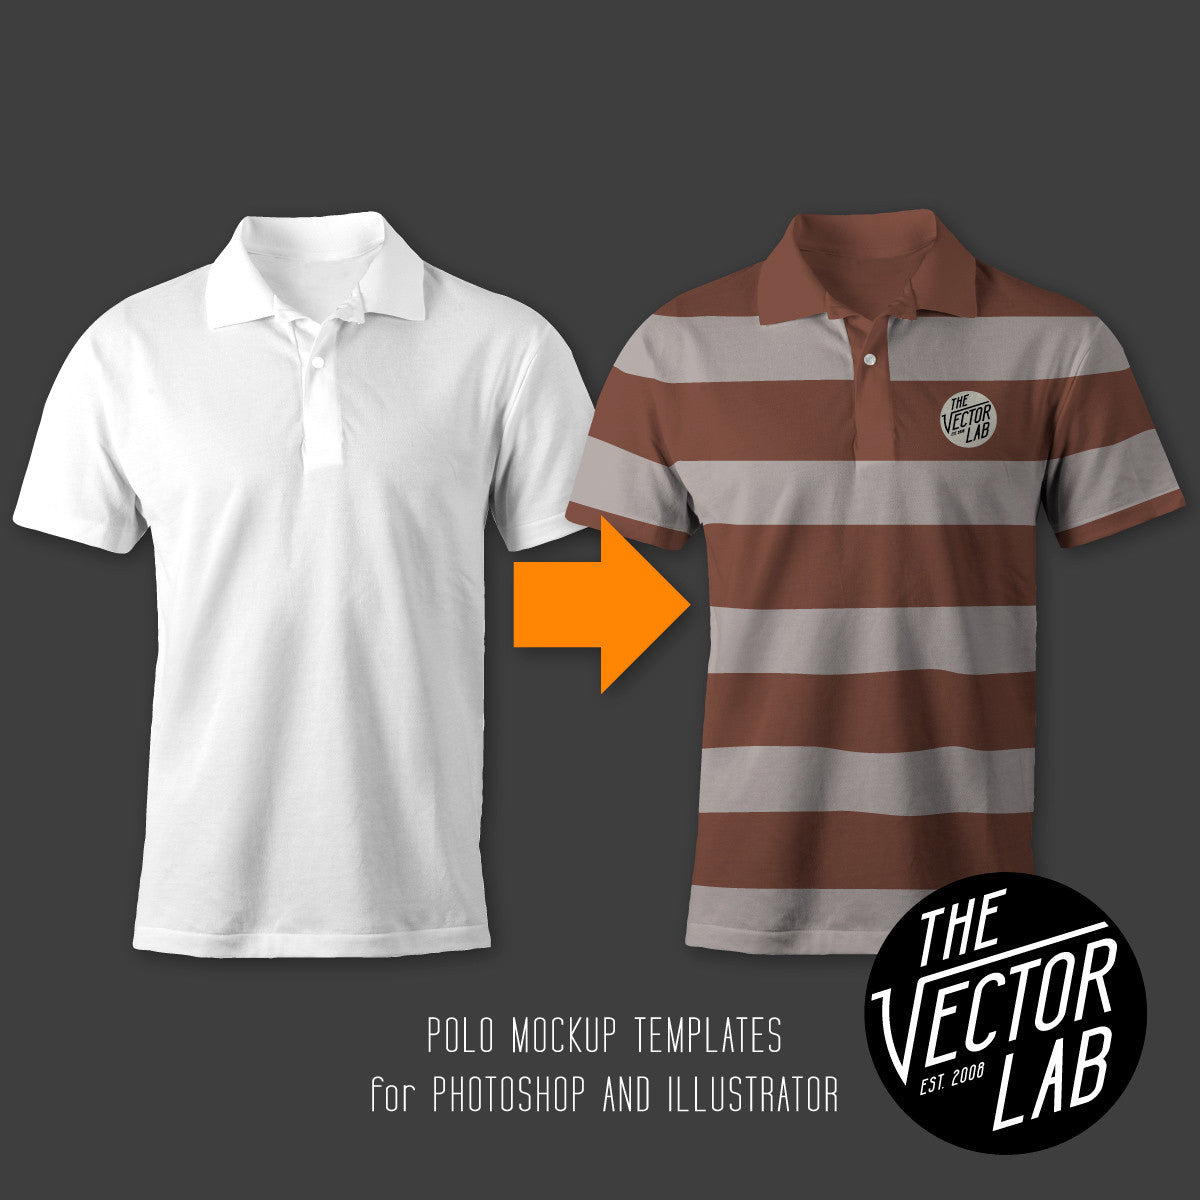 Men 39 s polo mockup templates thevectorlab for Free polo shirt mockup